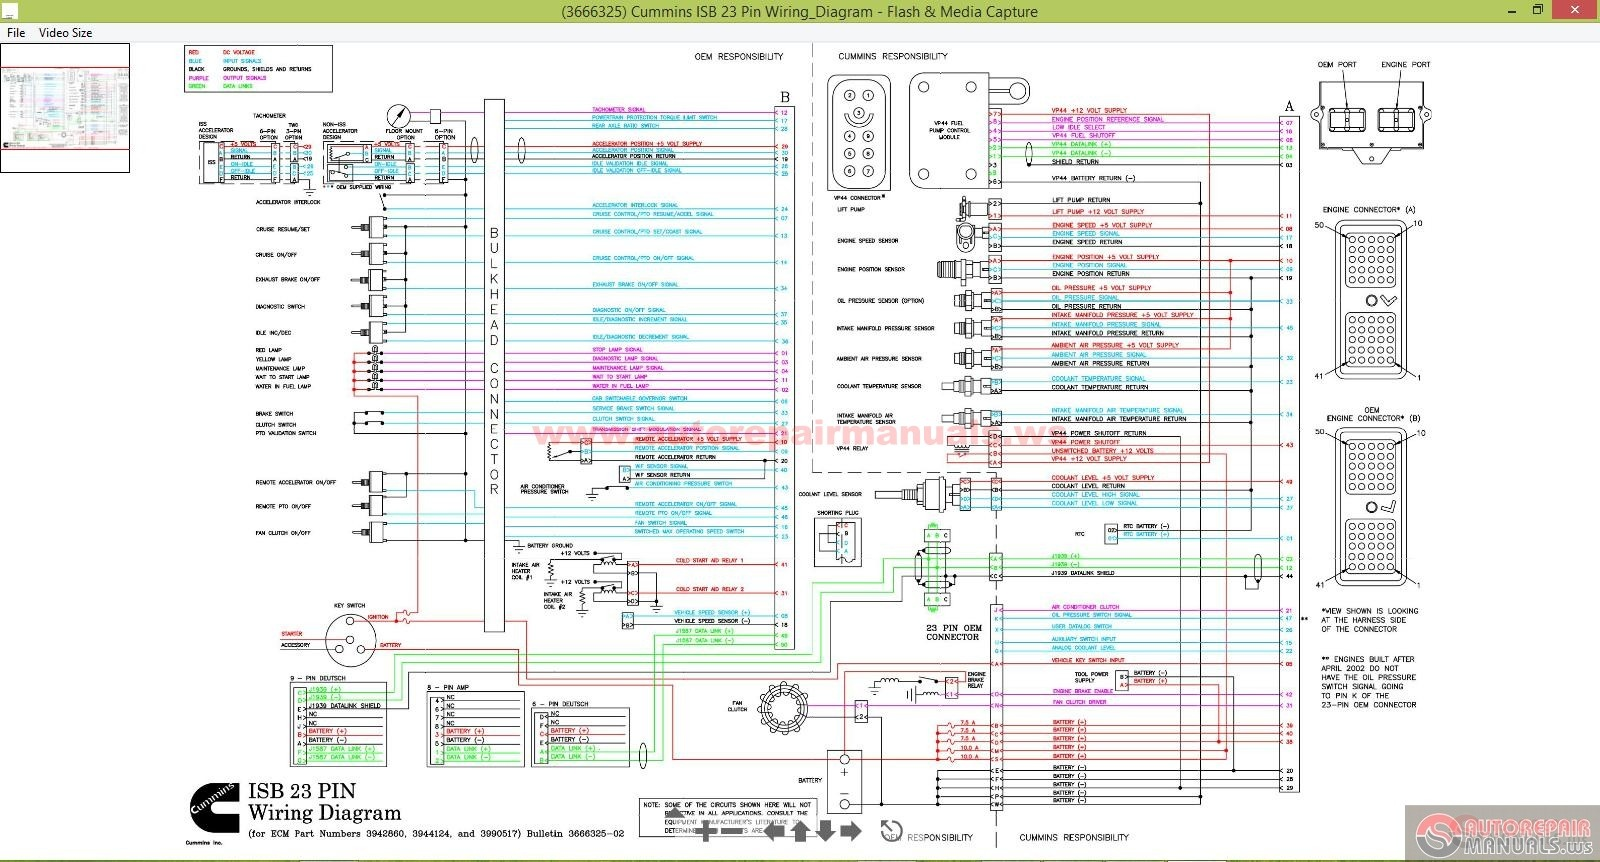 Cummins Wiring Diagram The Portal And Forum Of Ats Isb Todays Rh 19 8 1813weddingbarn Com Lookup